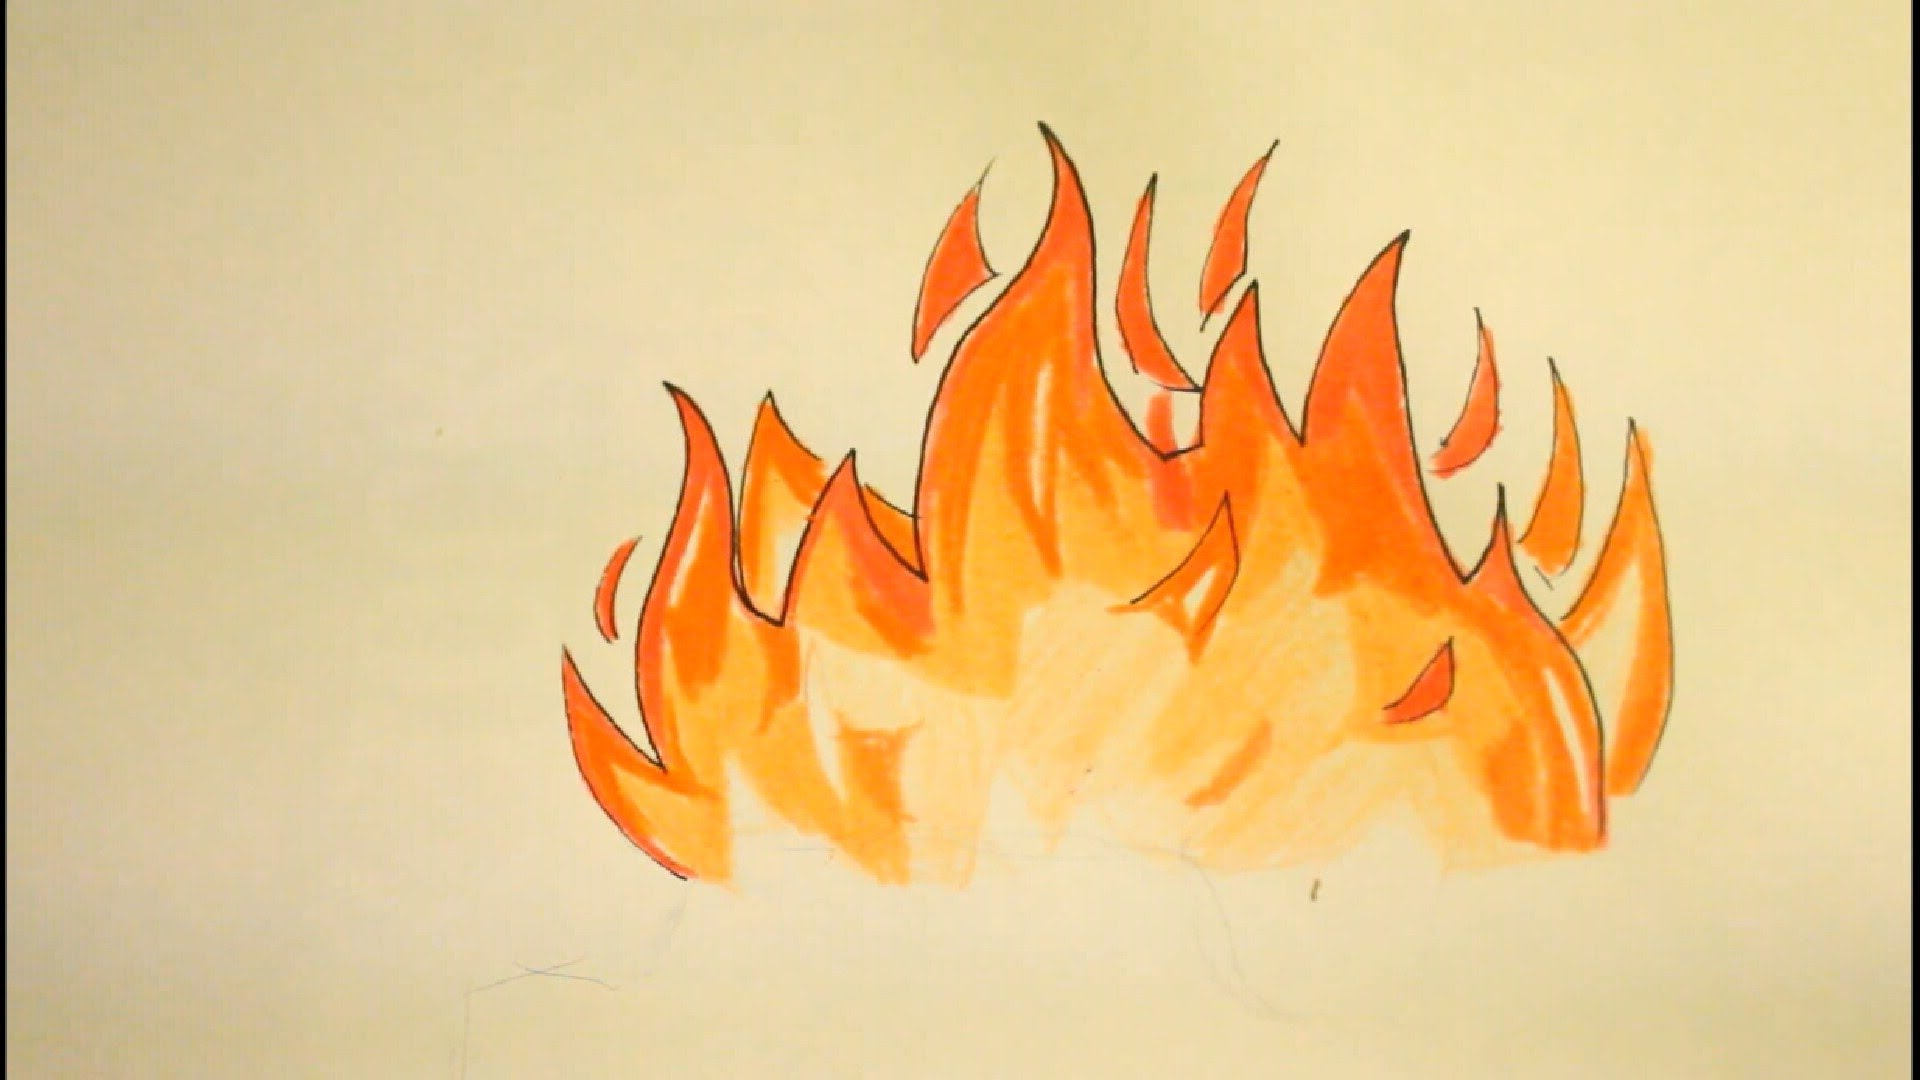 Drawn fire Draw For How Flames Easy